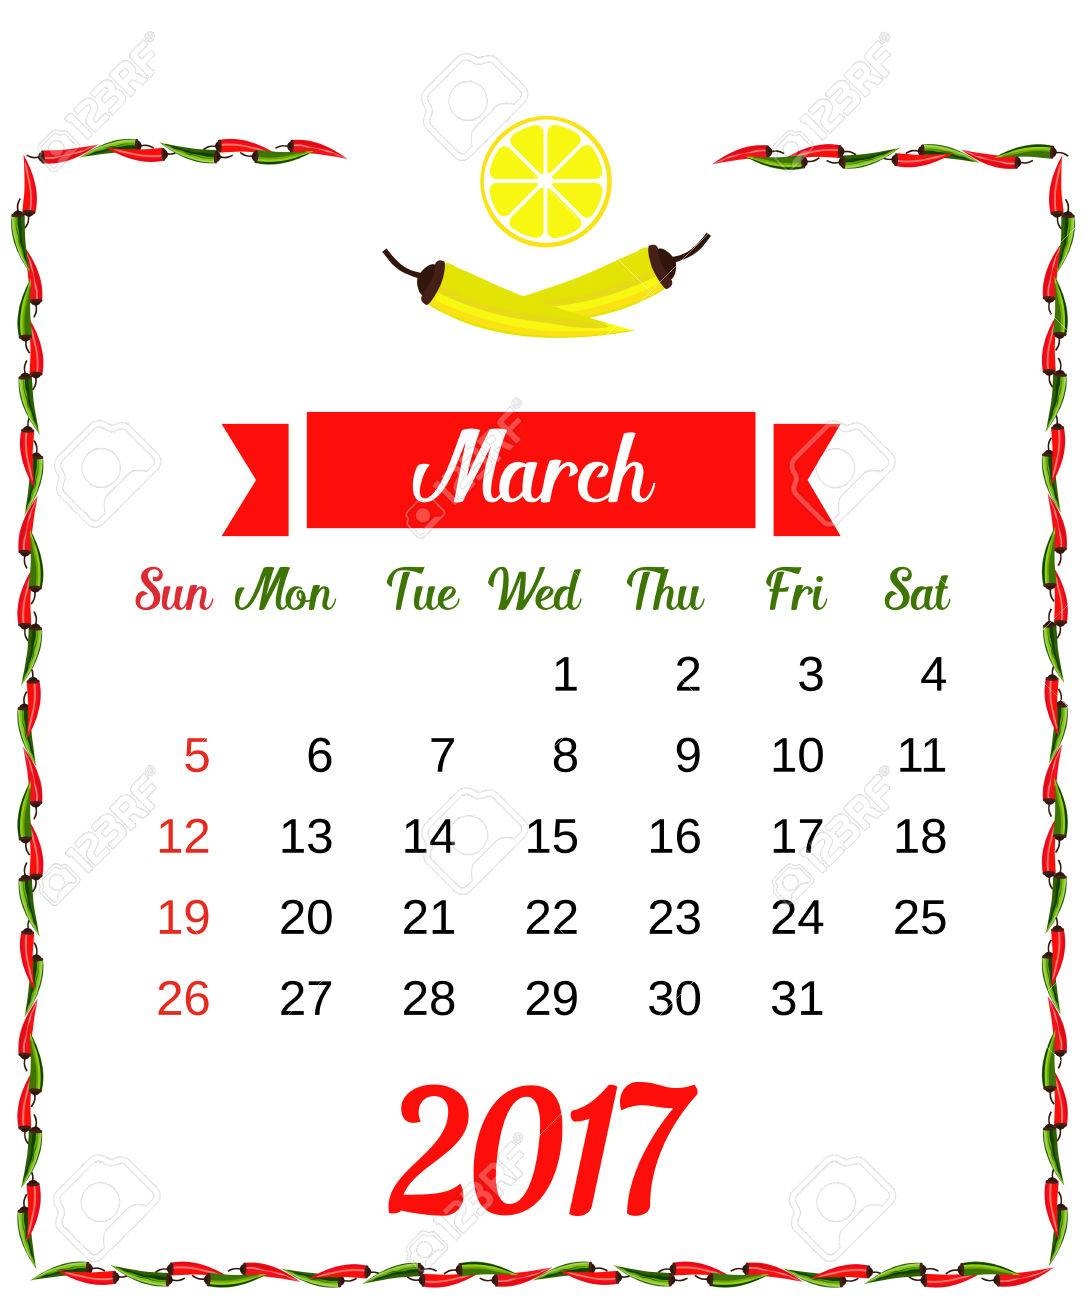 Calendario 2020 Chile Vector.2017 Calendar Template Of Monthly Calendar For March With Hot